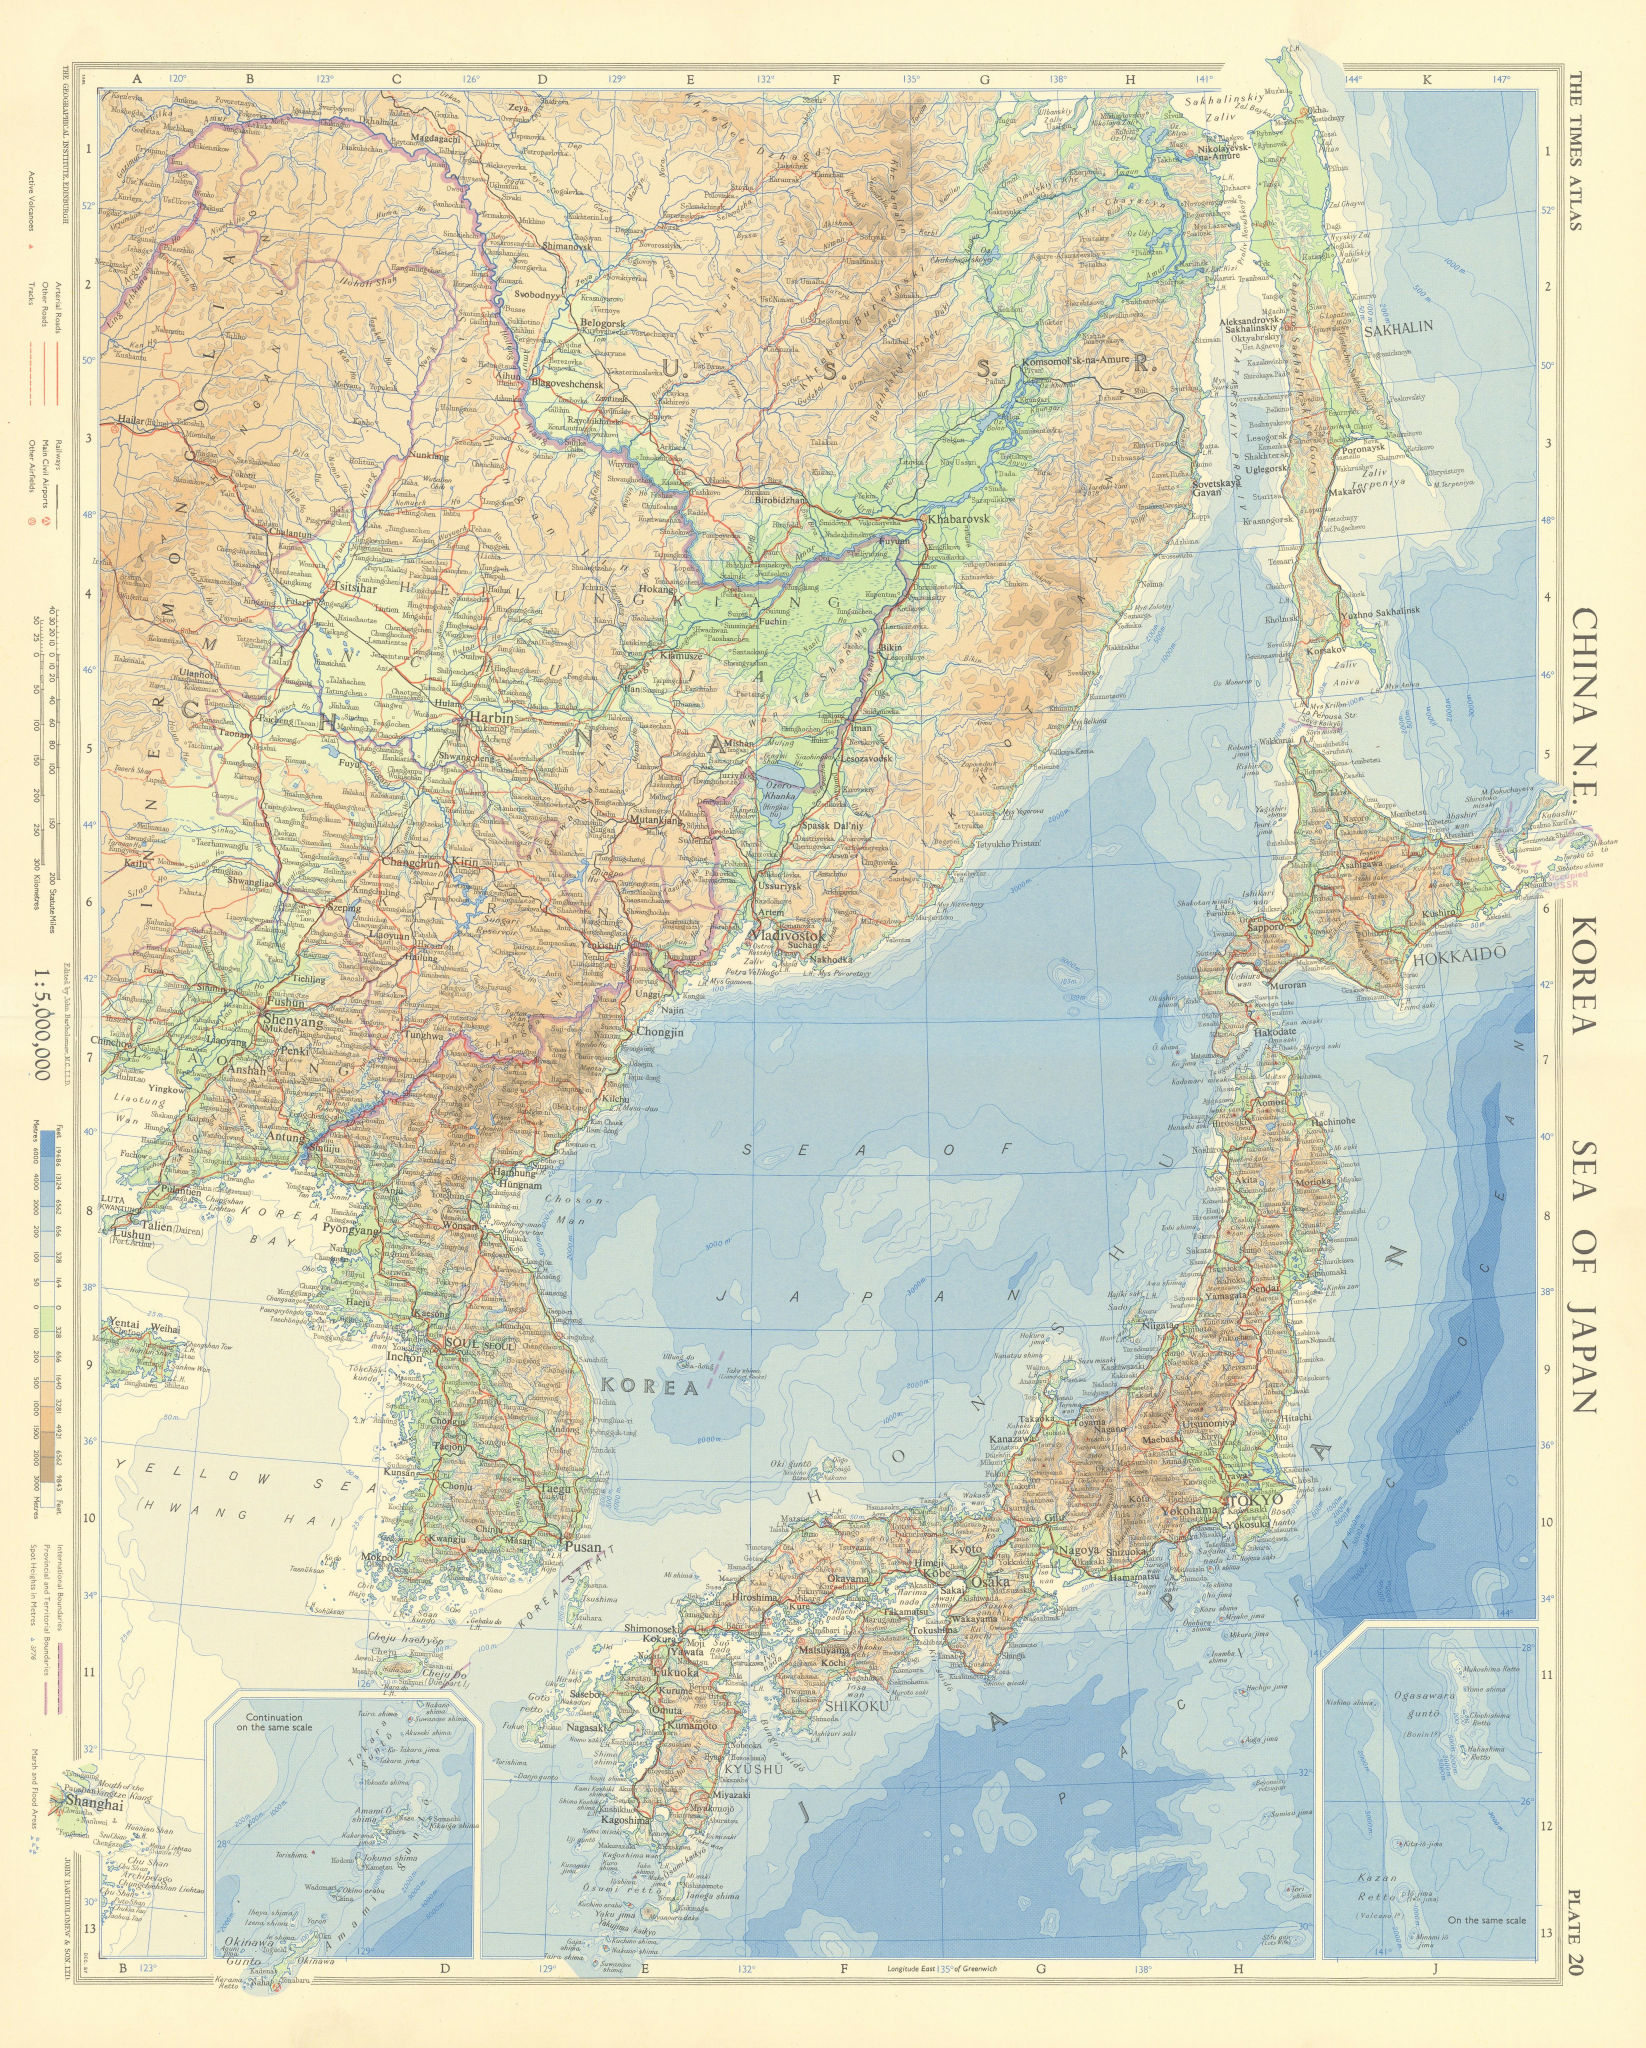 North-east China Korea Japan Russian Far East. North East Asia. TIMES 1958 map